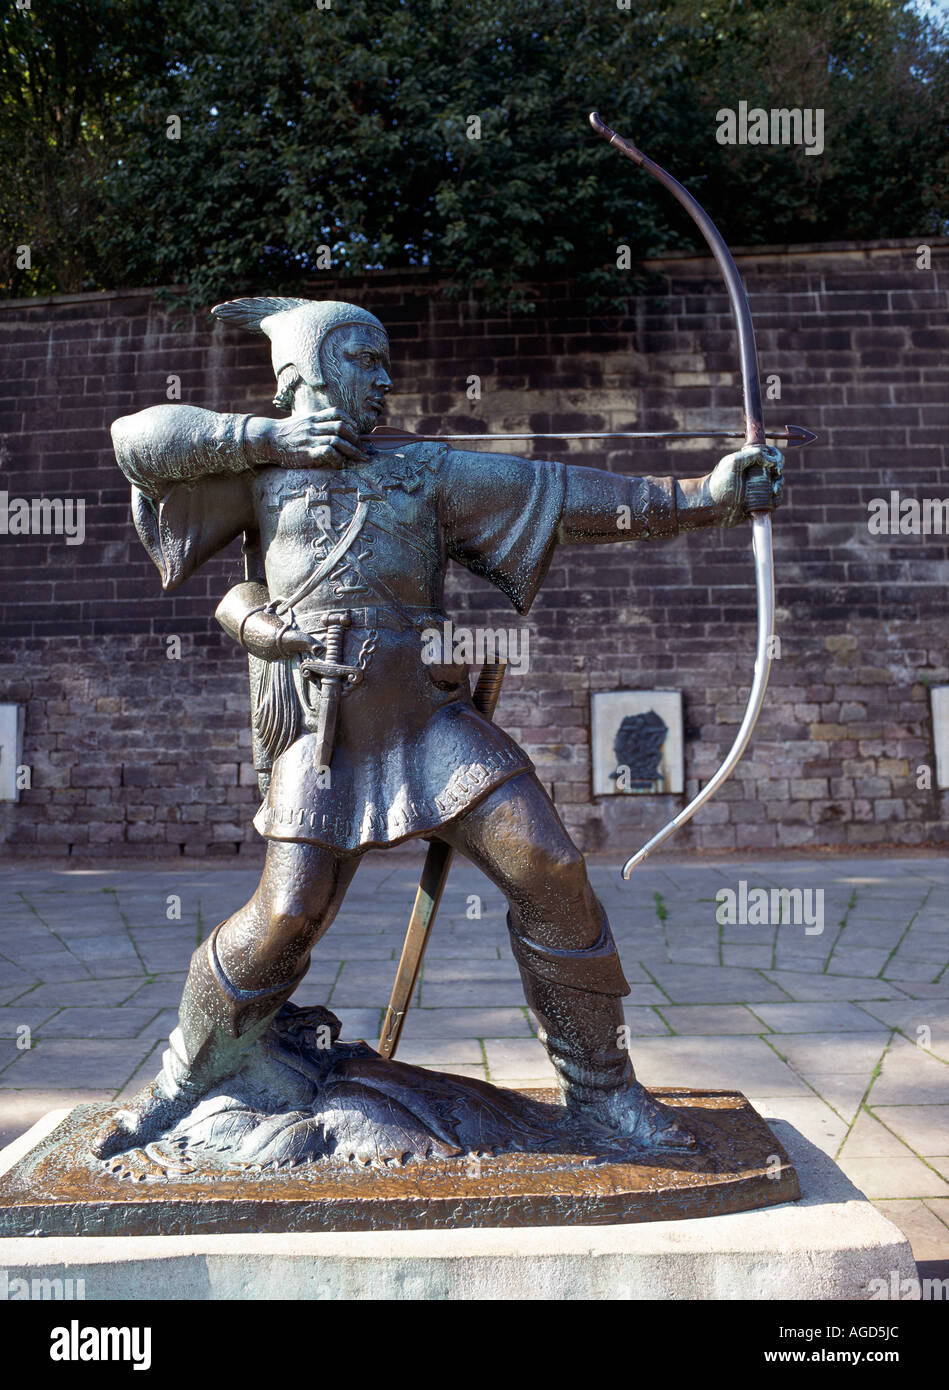 The bronze statue of Robin Hood was erected in 1952 a number of plaques surround the statue depicting scenes of - Stock Image